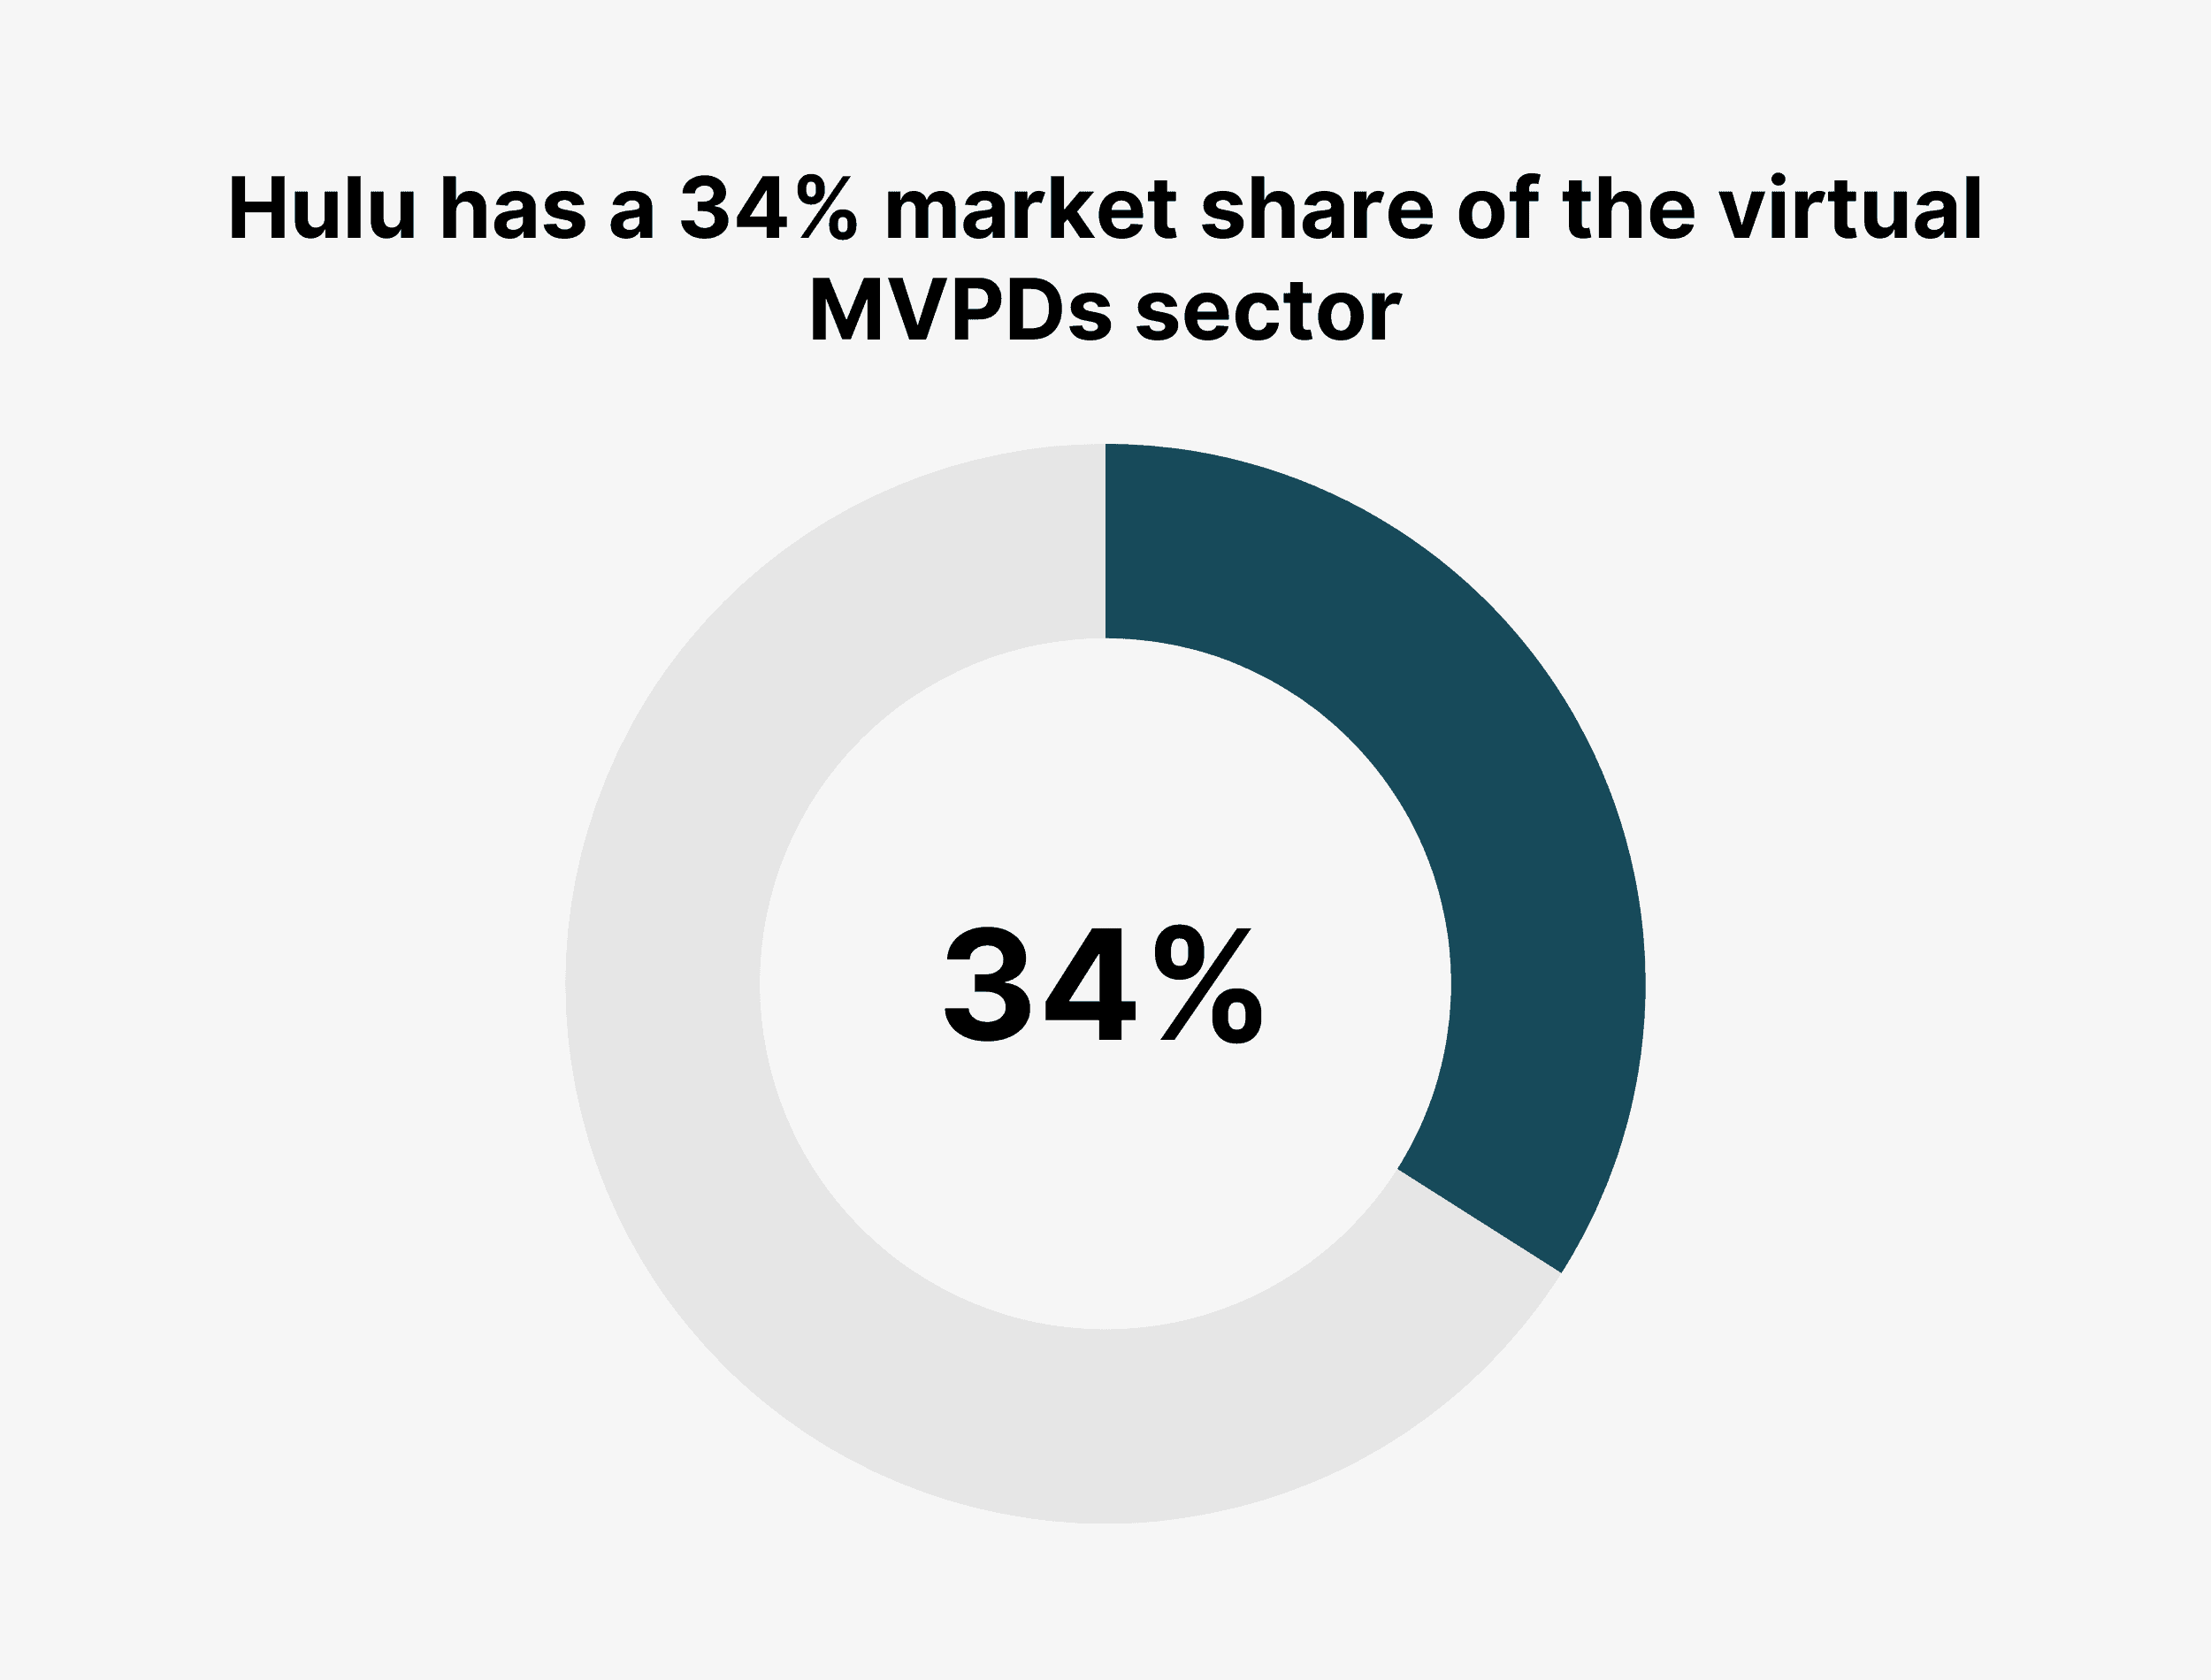 Hulu has a 34% market share of the virtual MVPDs sector